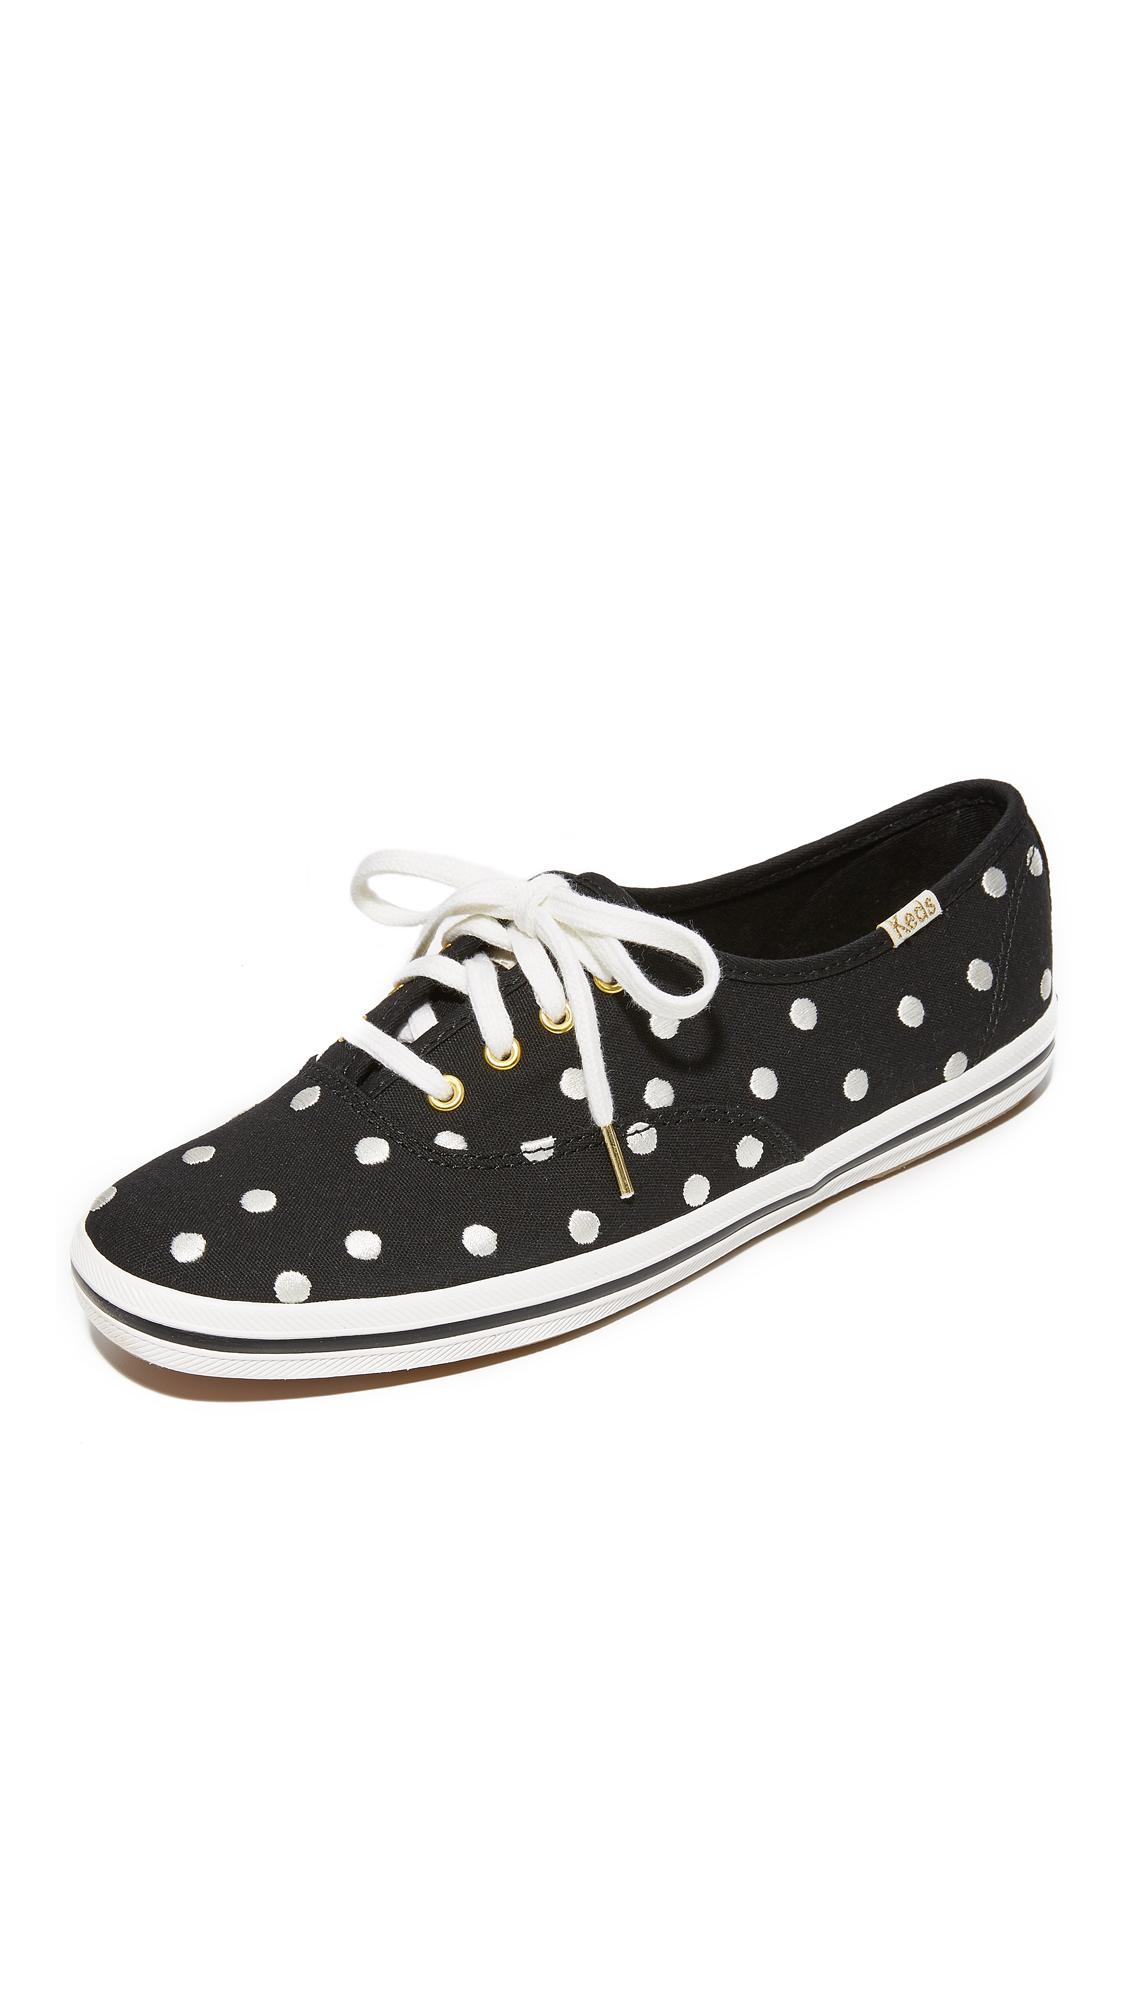 Kate Spade New York x Keds Kick Polka Dot Keds Sneakers - Pristine White/Black